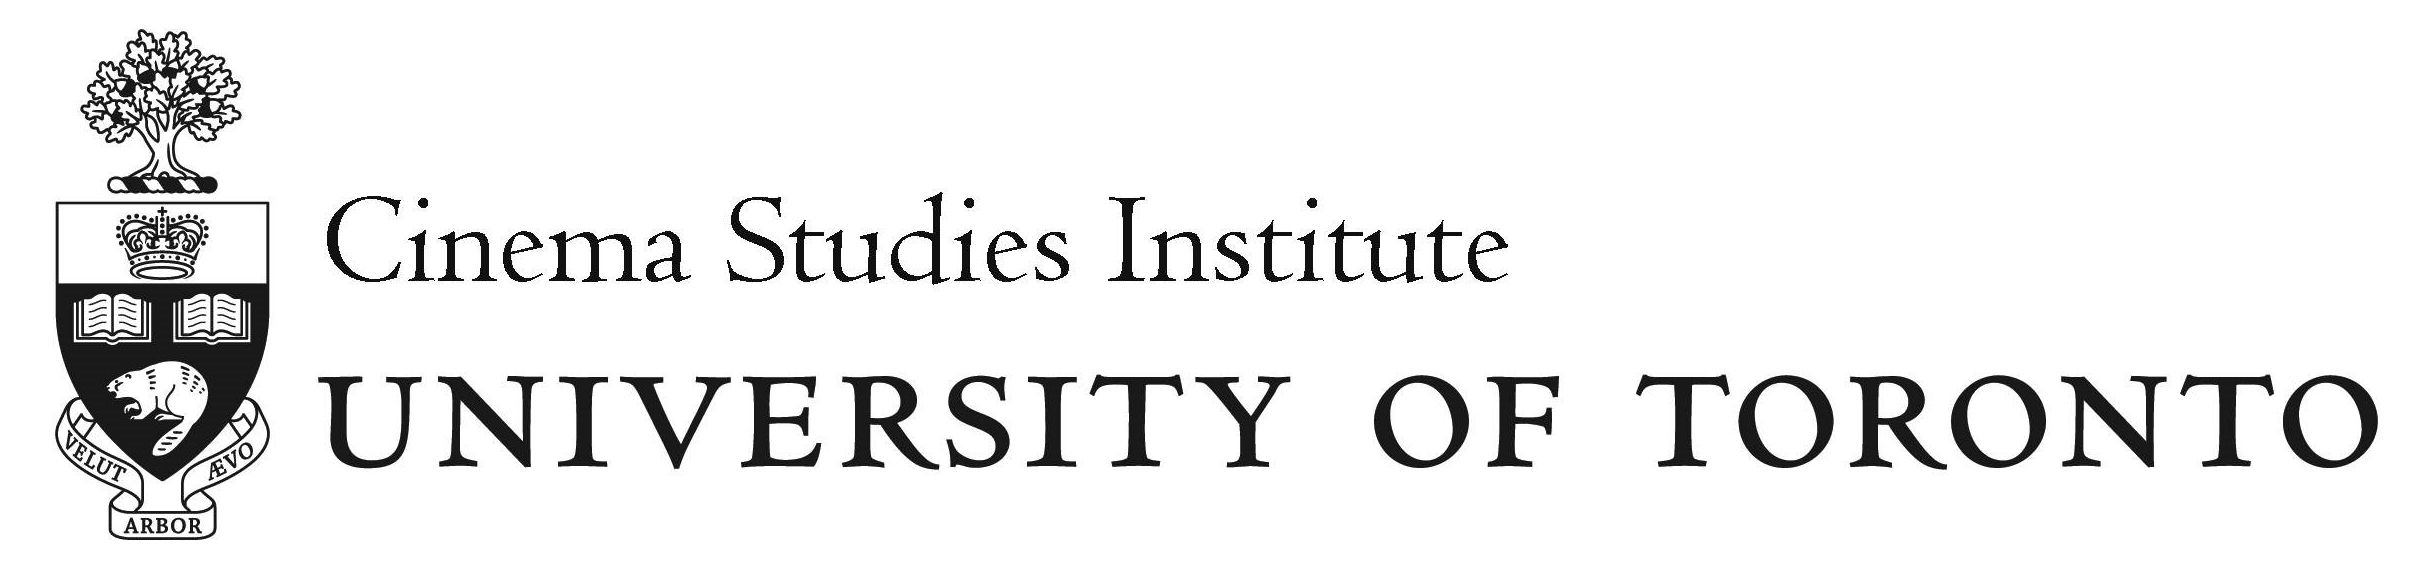 University of Toronto Cinema Studies Institute